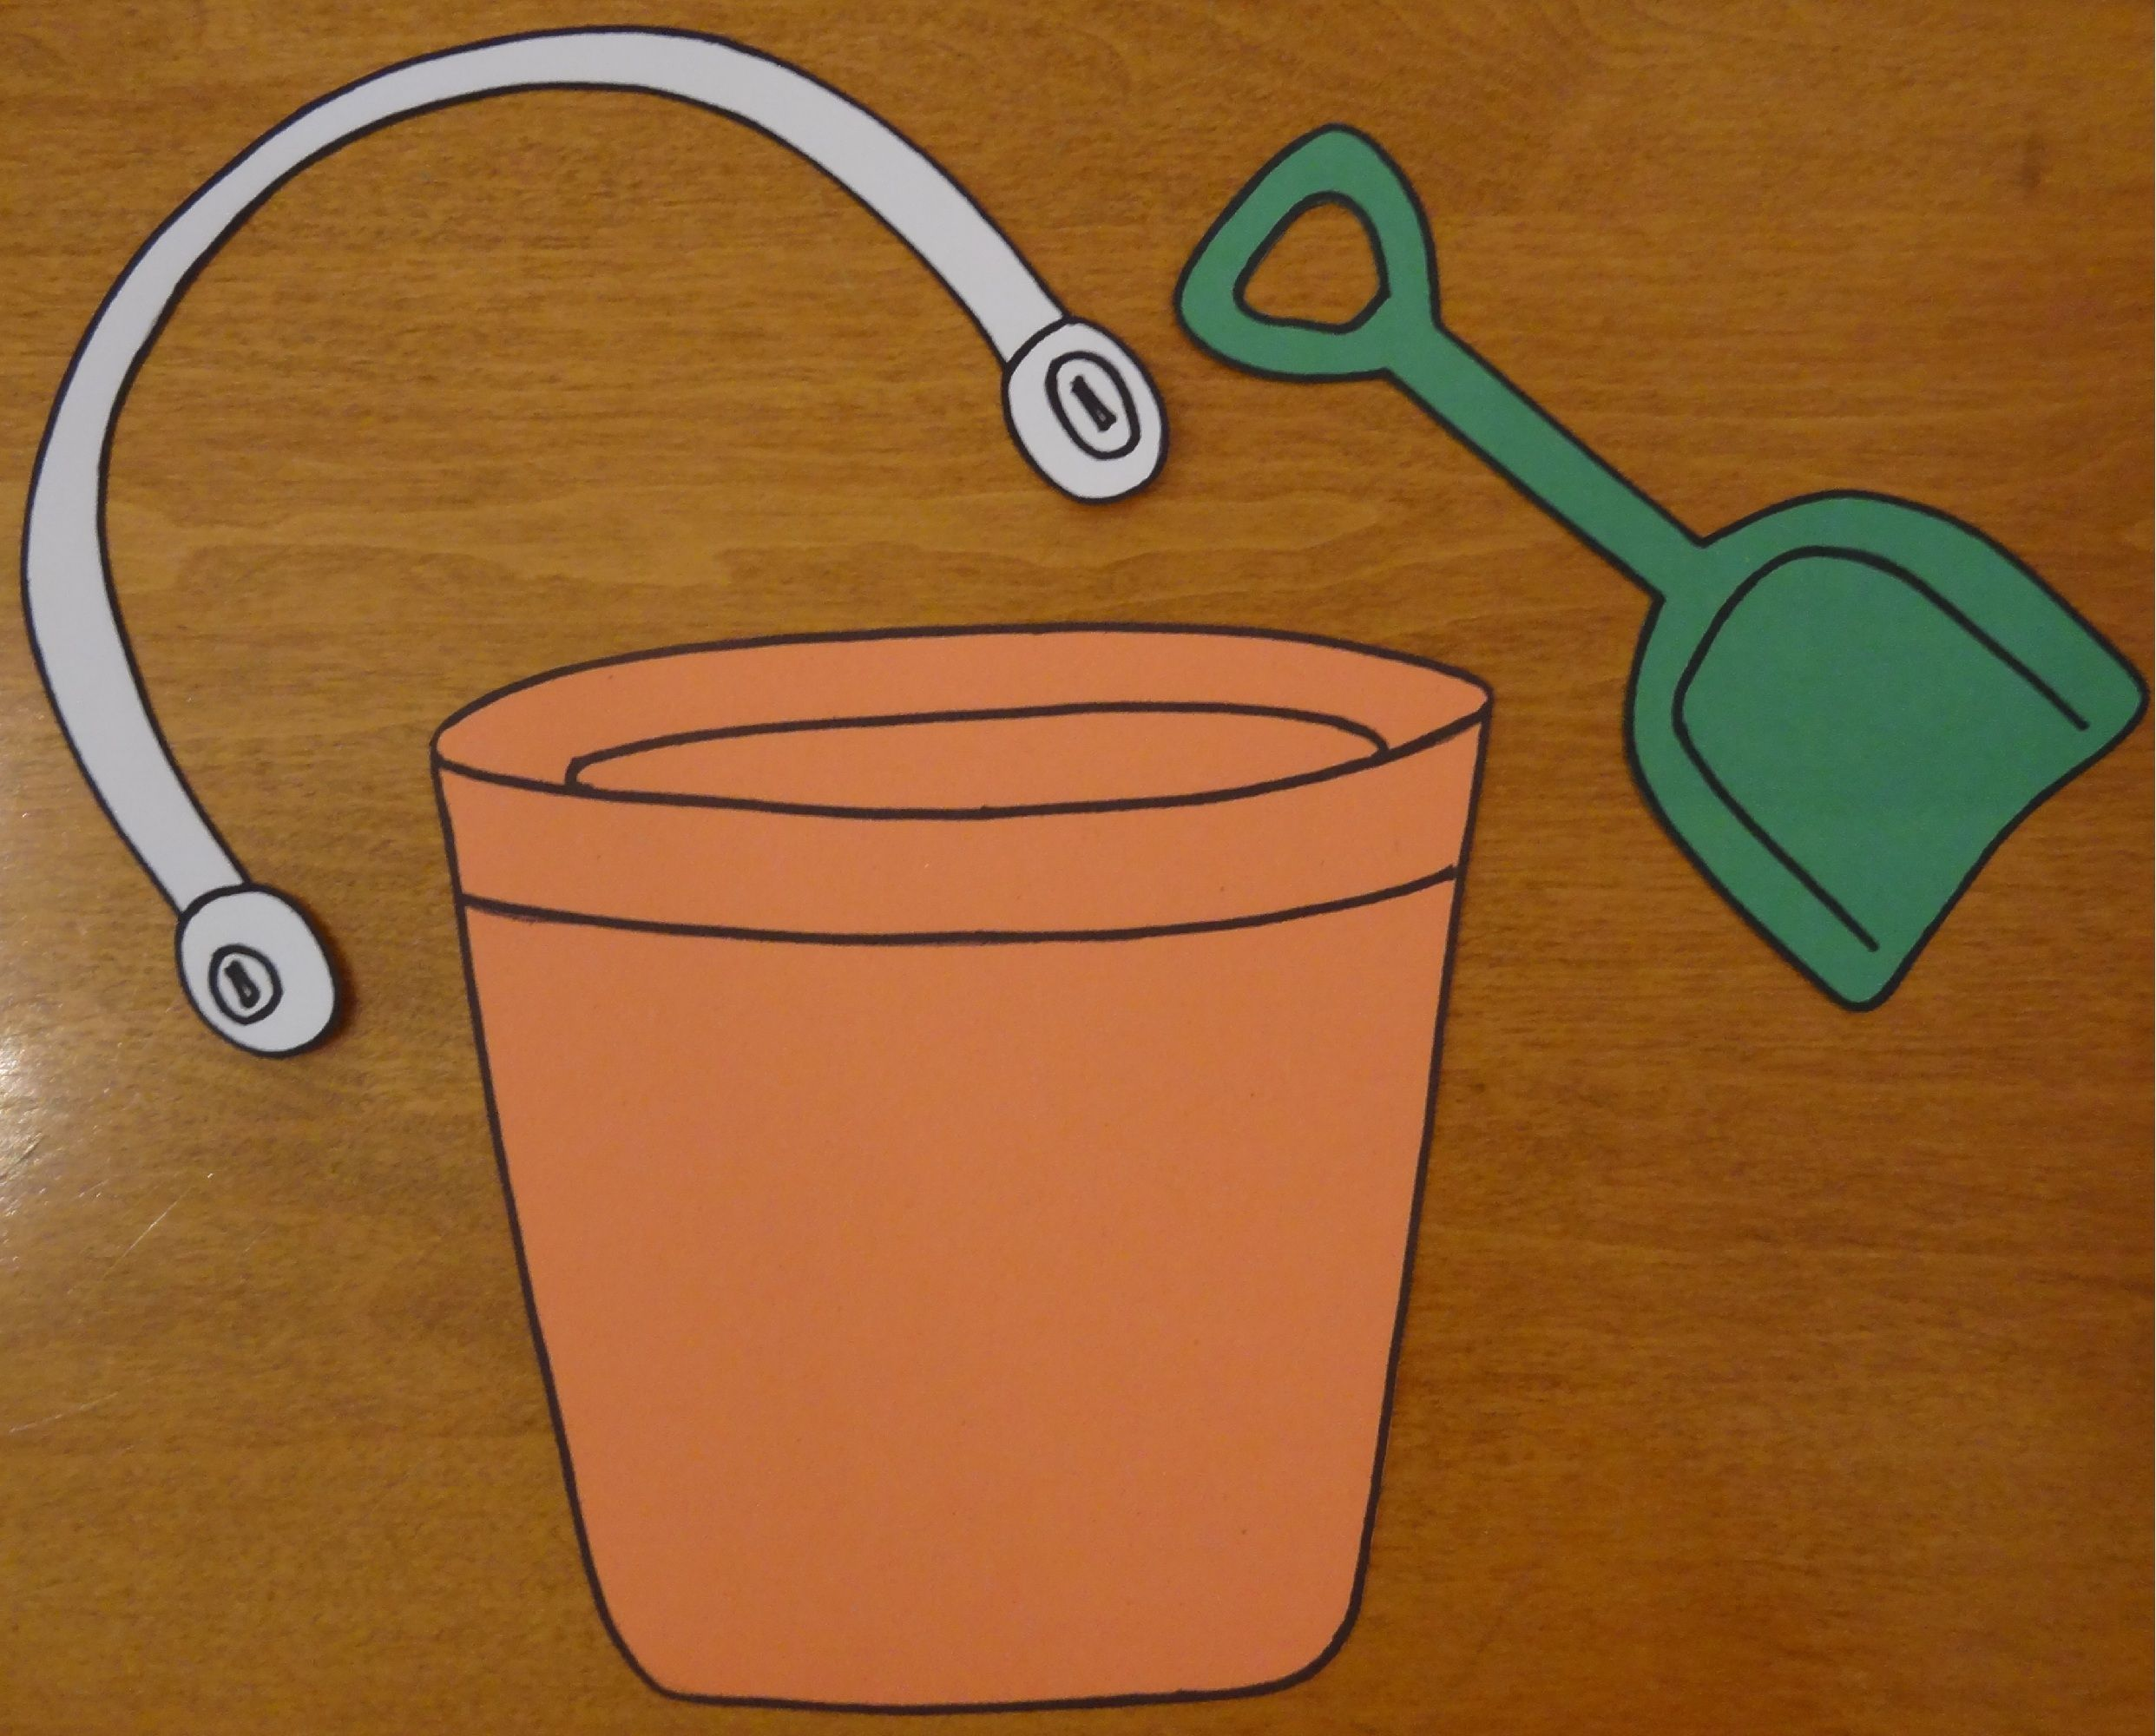 Checkout This Great Post On MPM School Supplies Blog1 Template For Beach Pail And Shovel